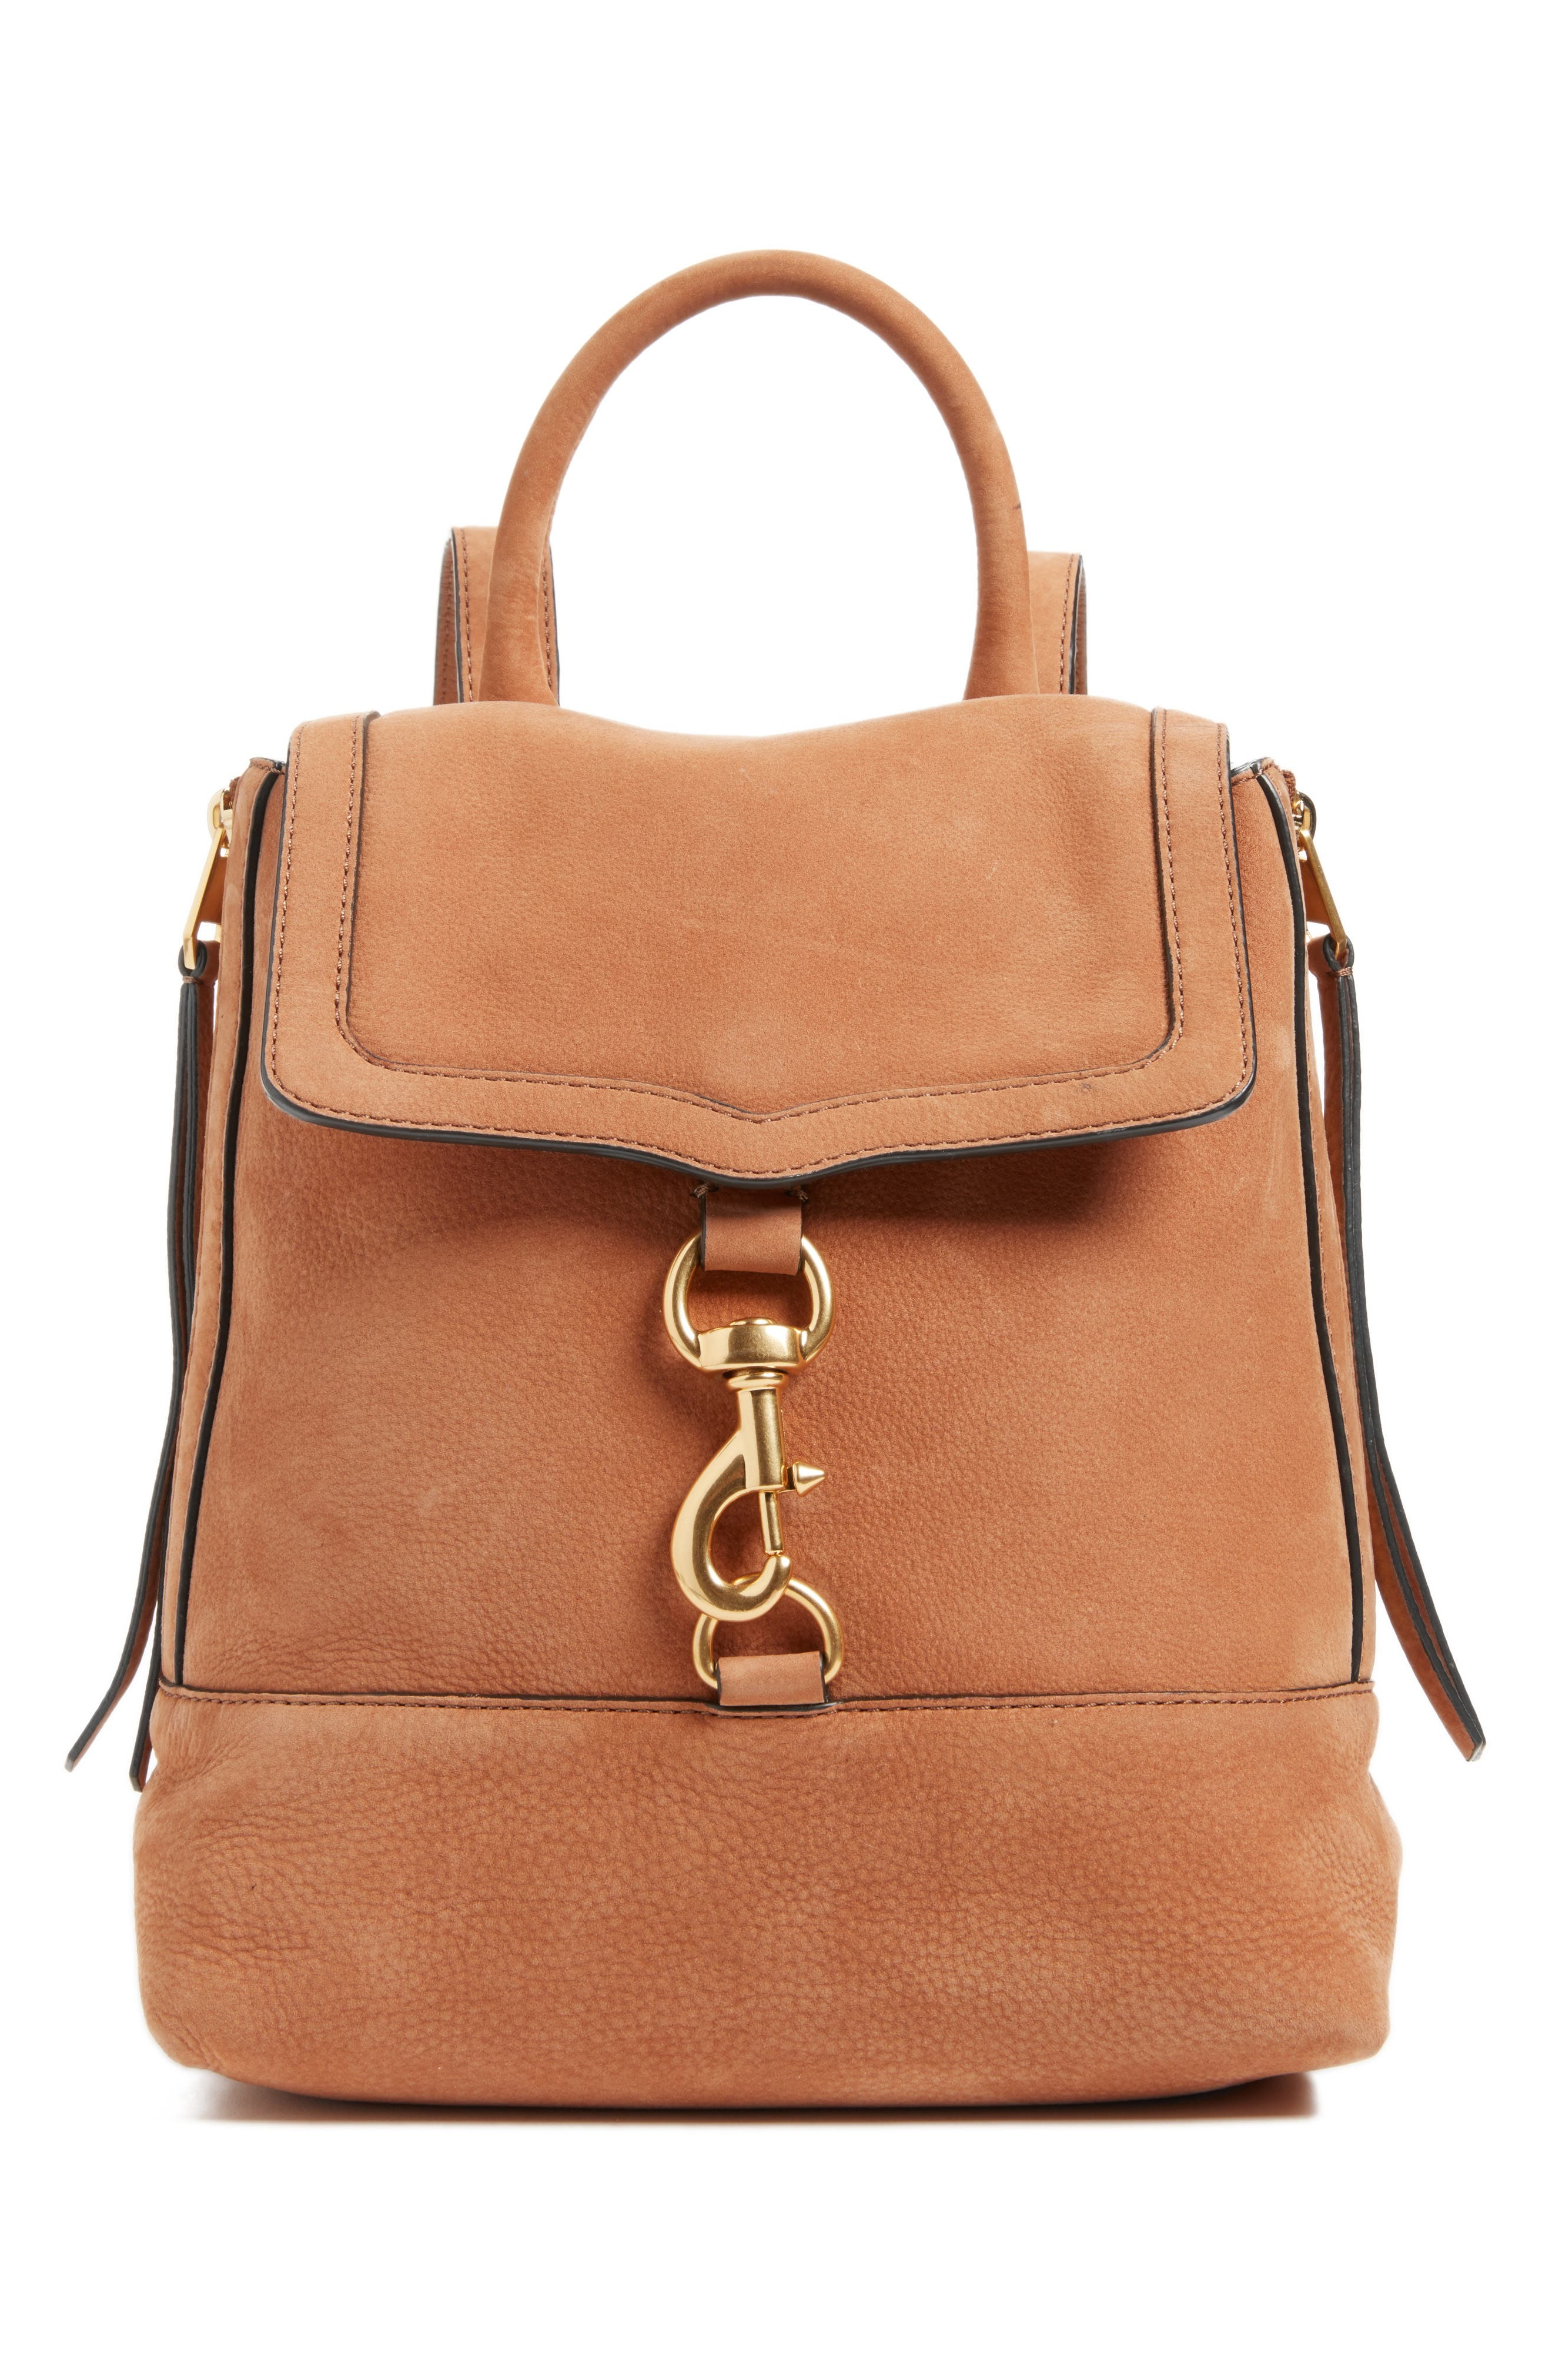 Rebecca Minkoff  BREE LEATHER CONVERTIBLE BACKPACK - BROWN